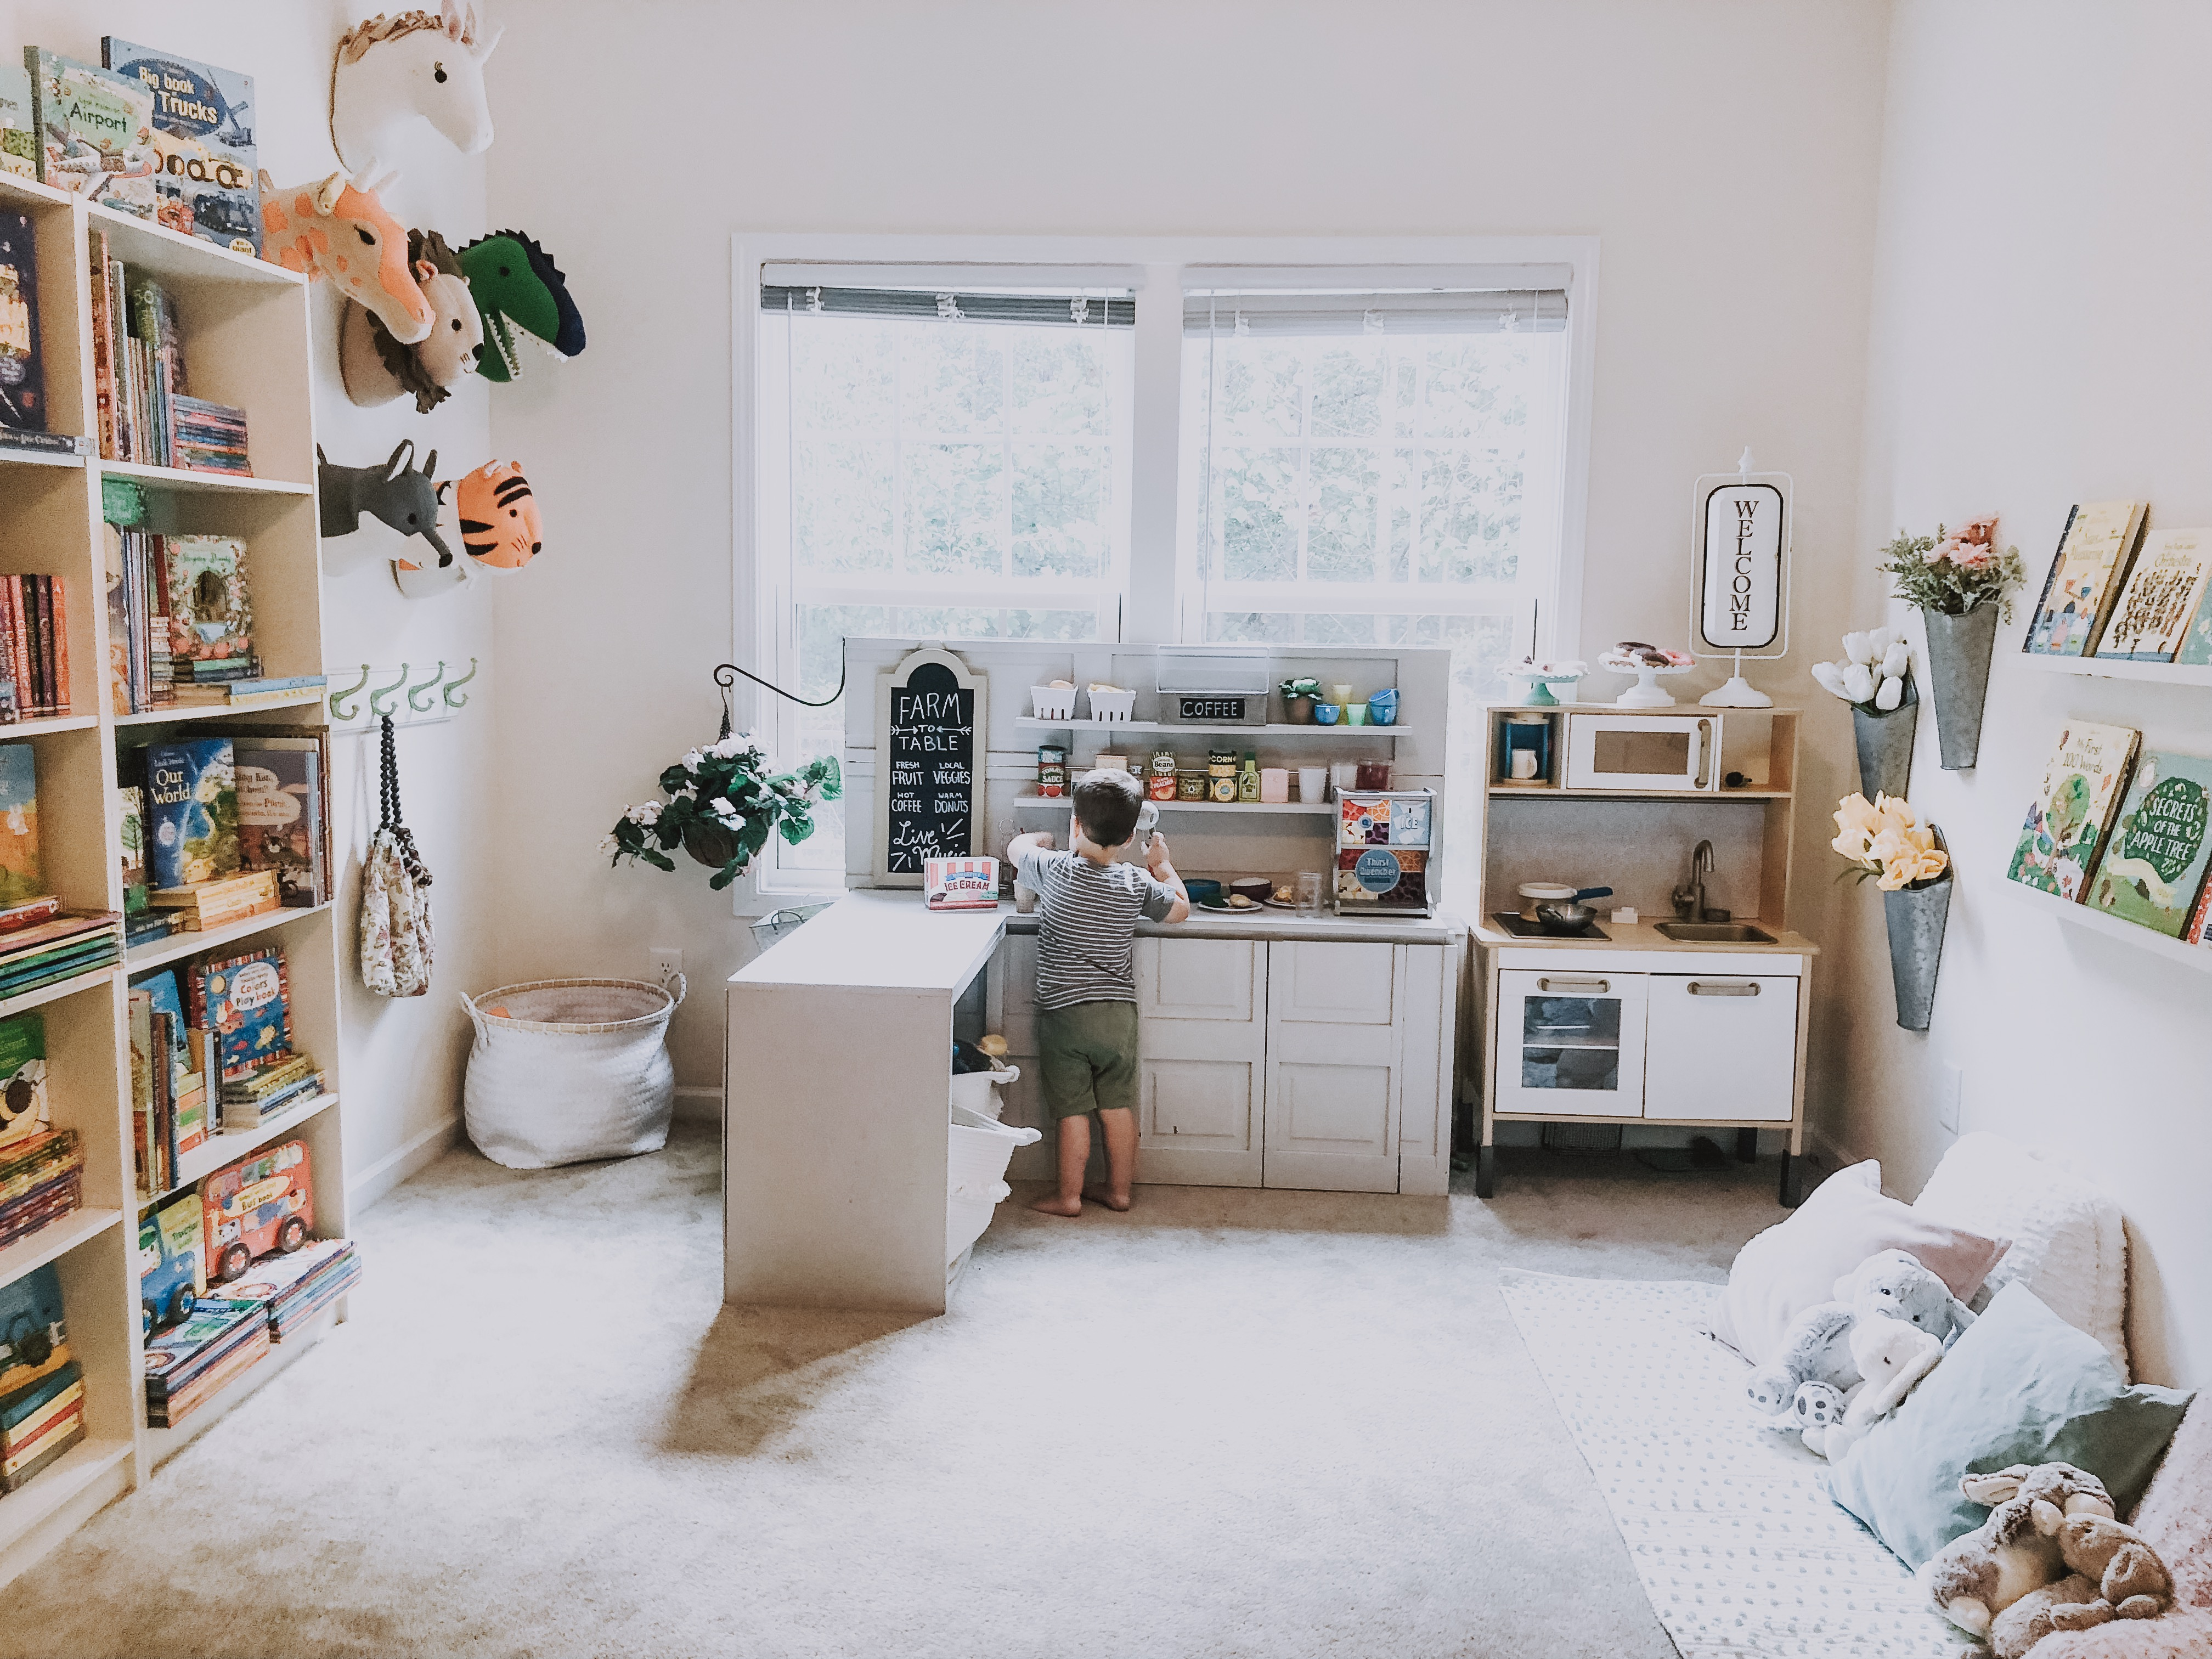 Our Play Kitchen Gift Guide – At Home With Natalie